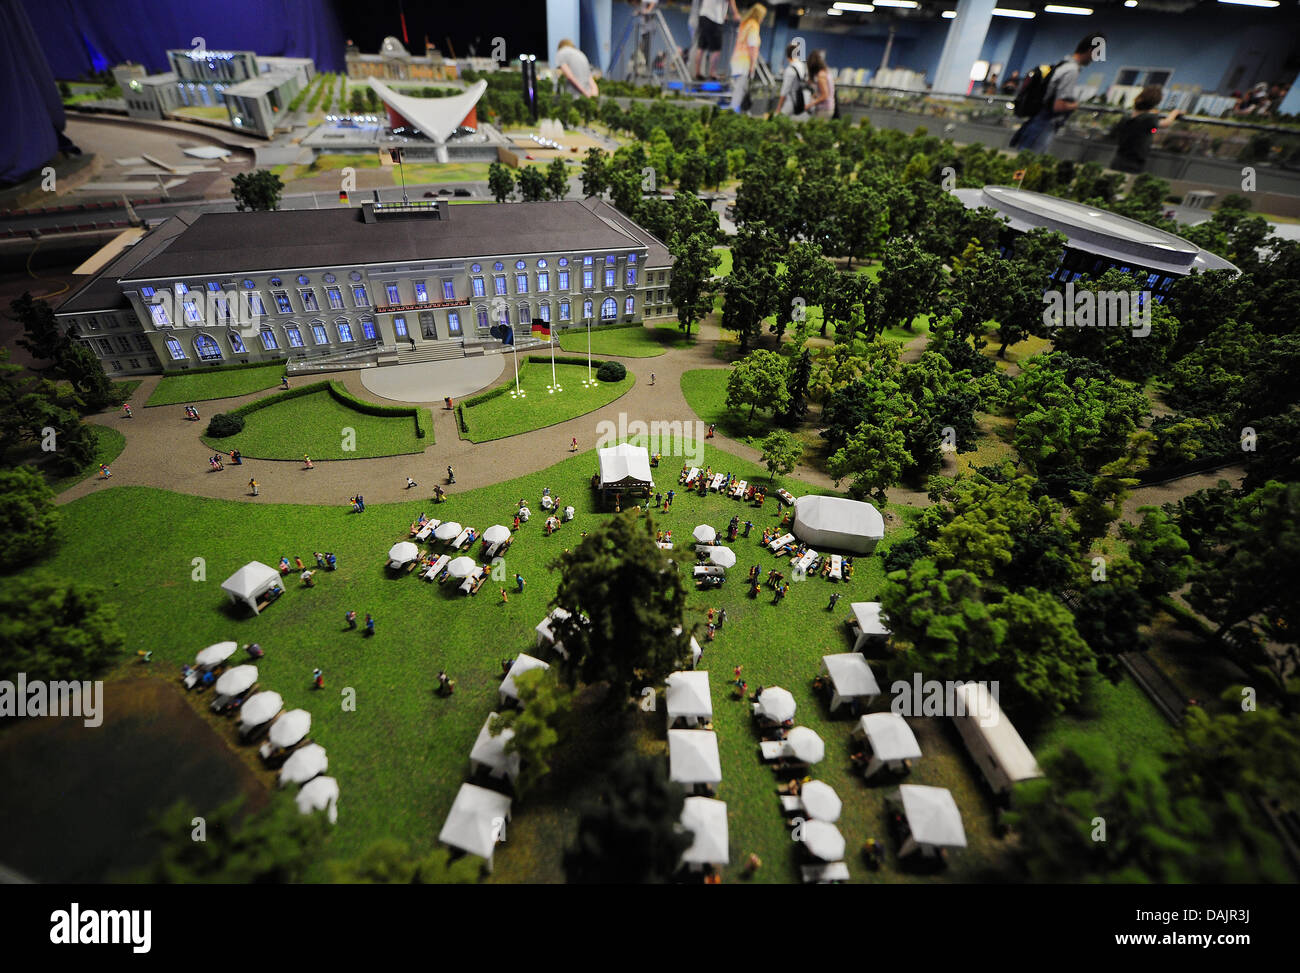 A Miniature Model Of Bellevue Castle Is Presented At The Miniature World  U0027LOXX At Alexu0027 In Berlin, Germany, 26 April 2011. Left To It The House Of  World ...